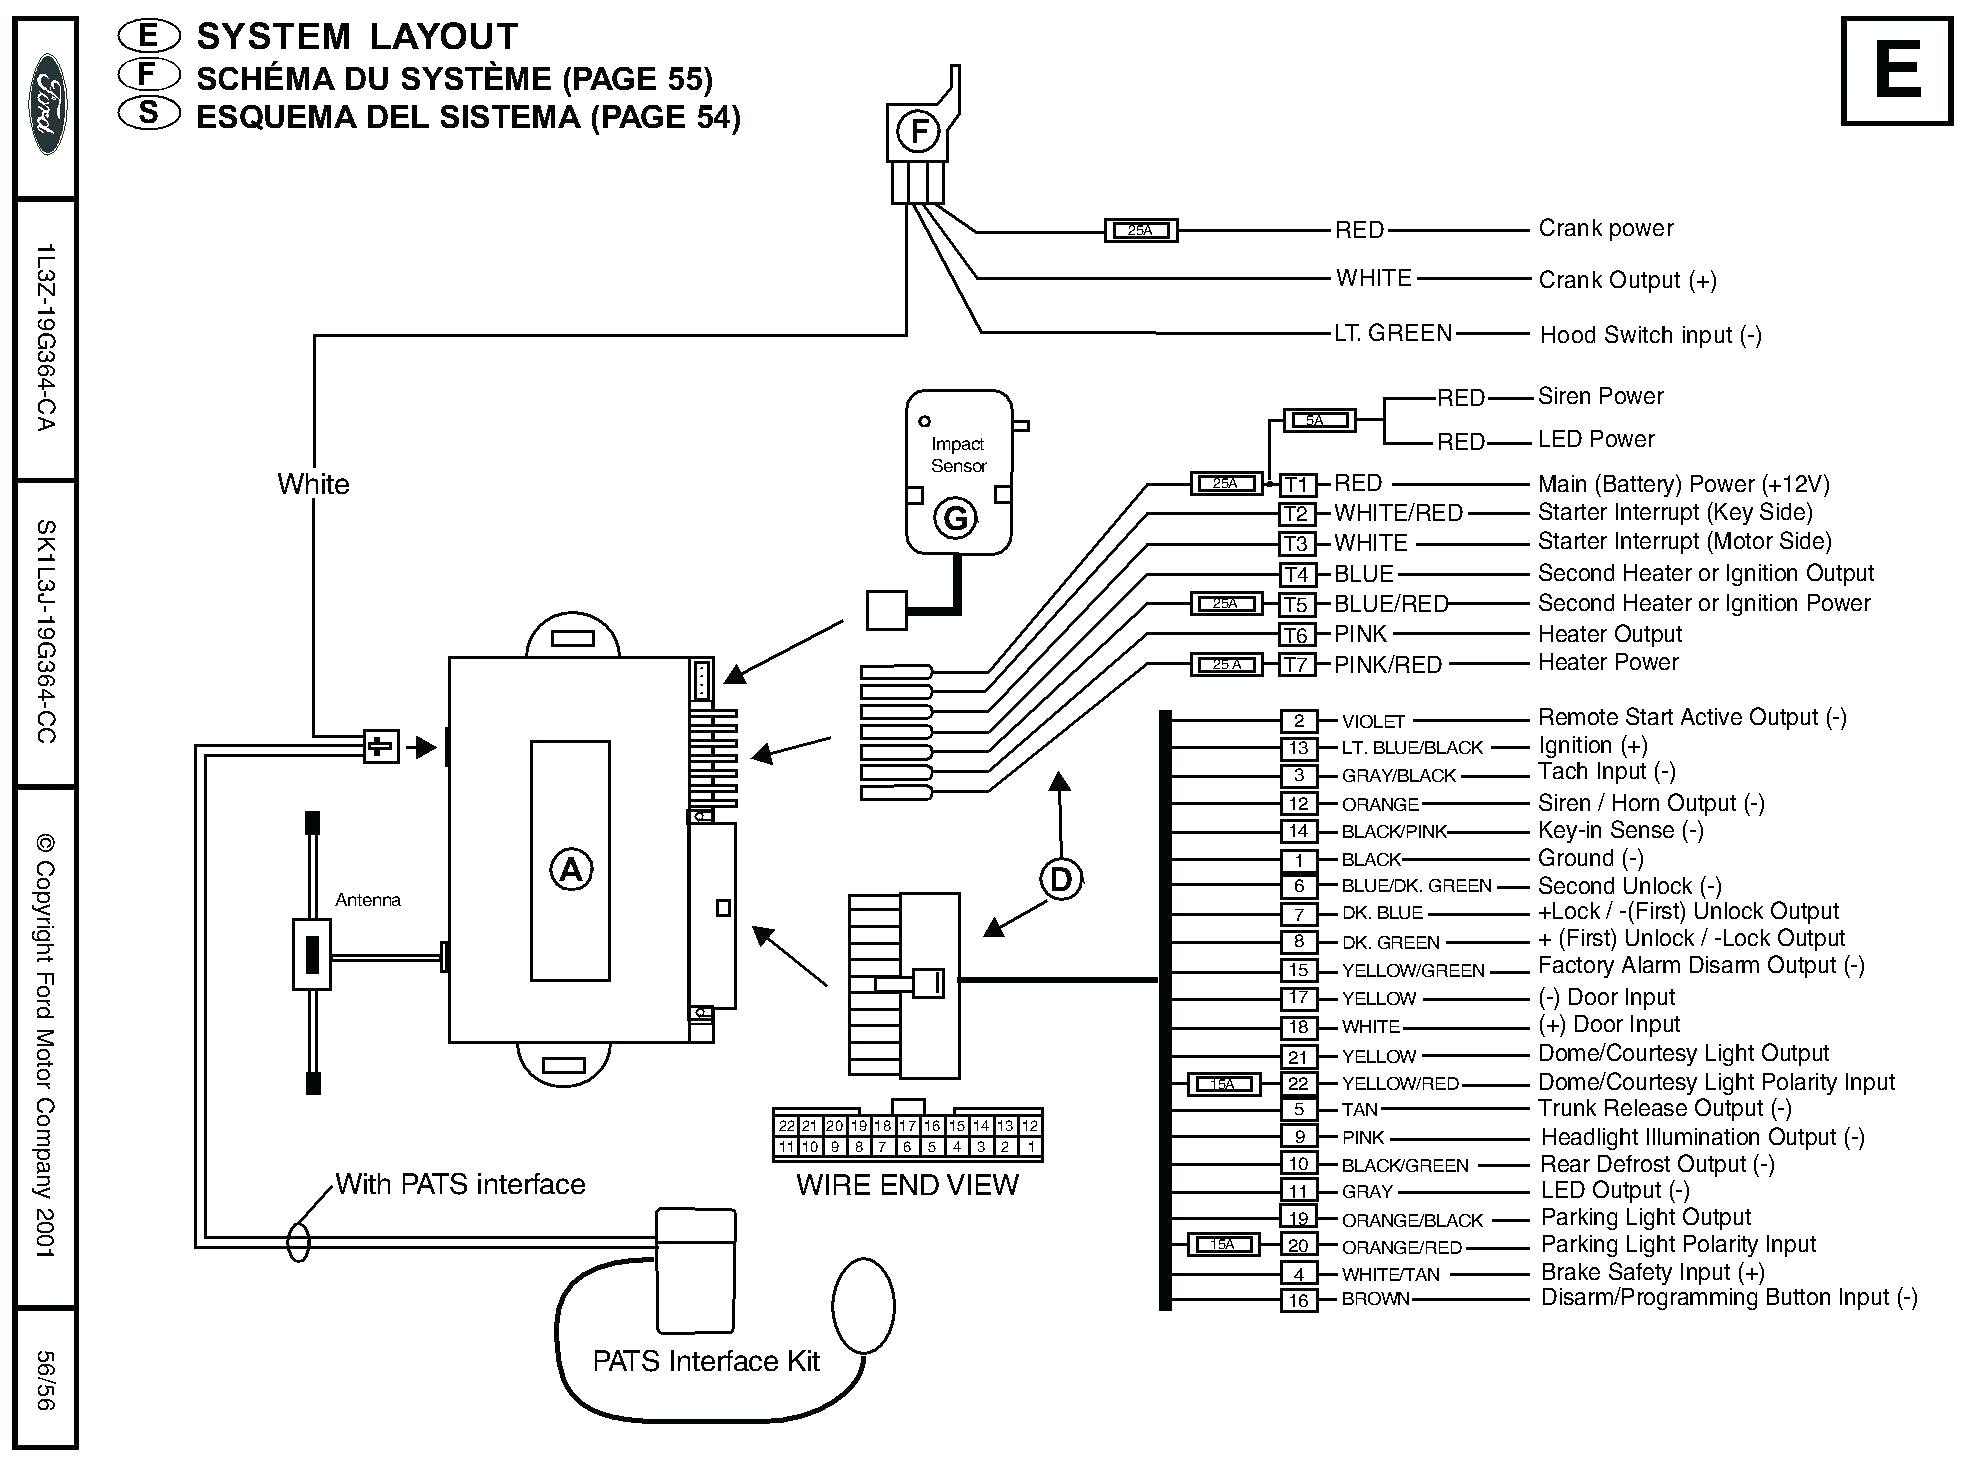 fire alarm wiring diagram as well as security camera wiring diagram